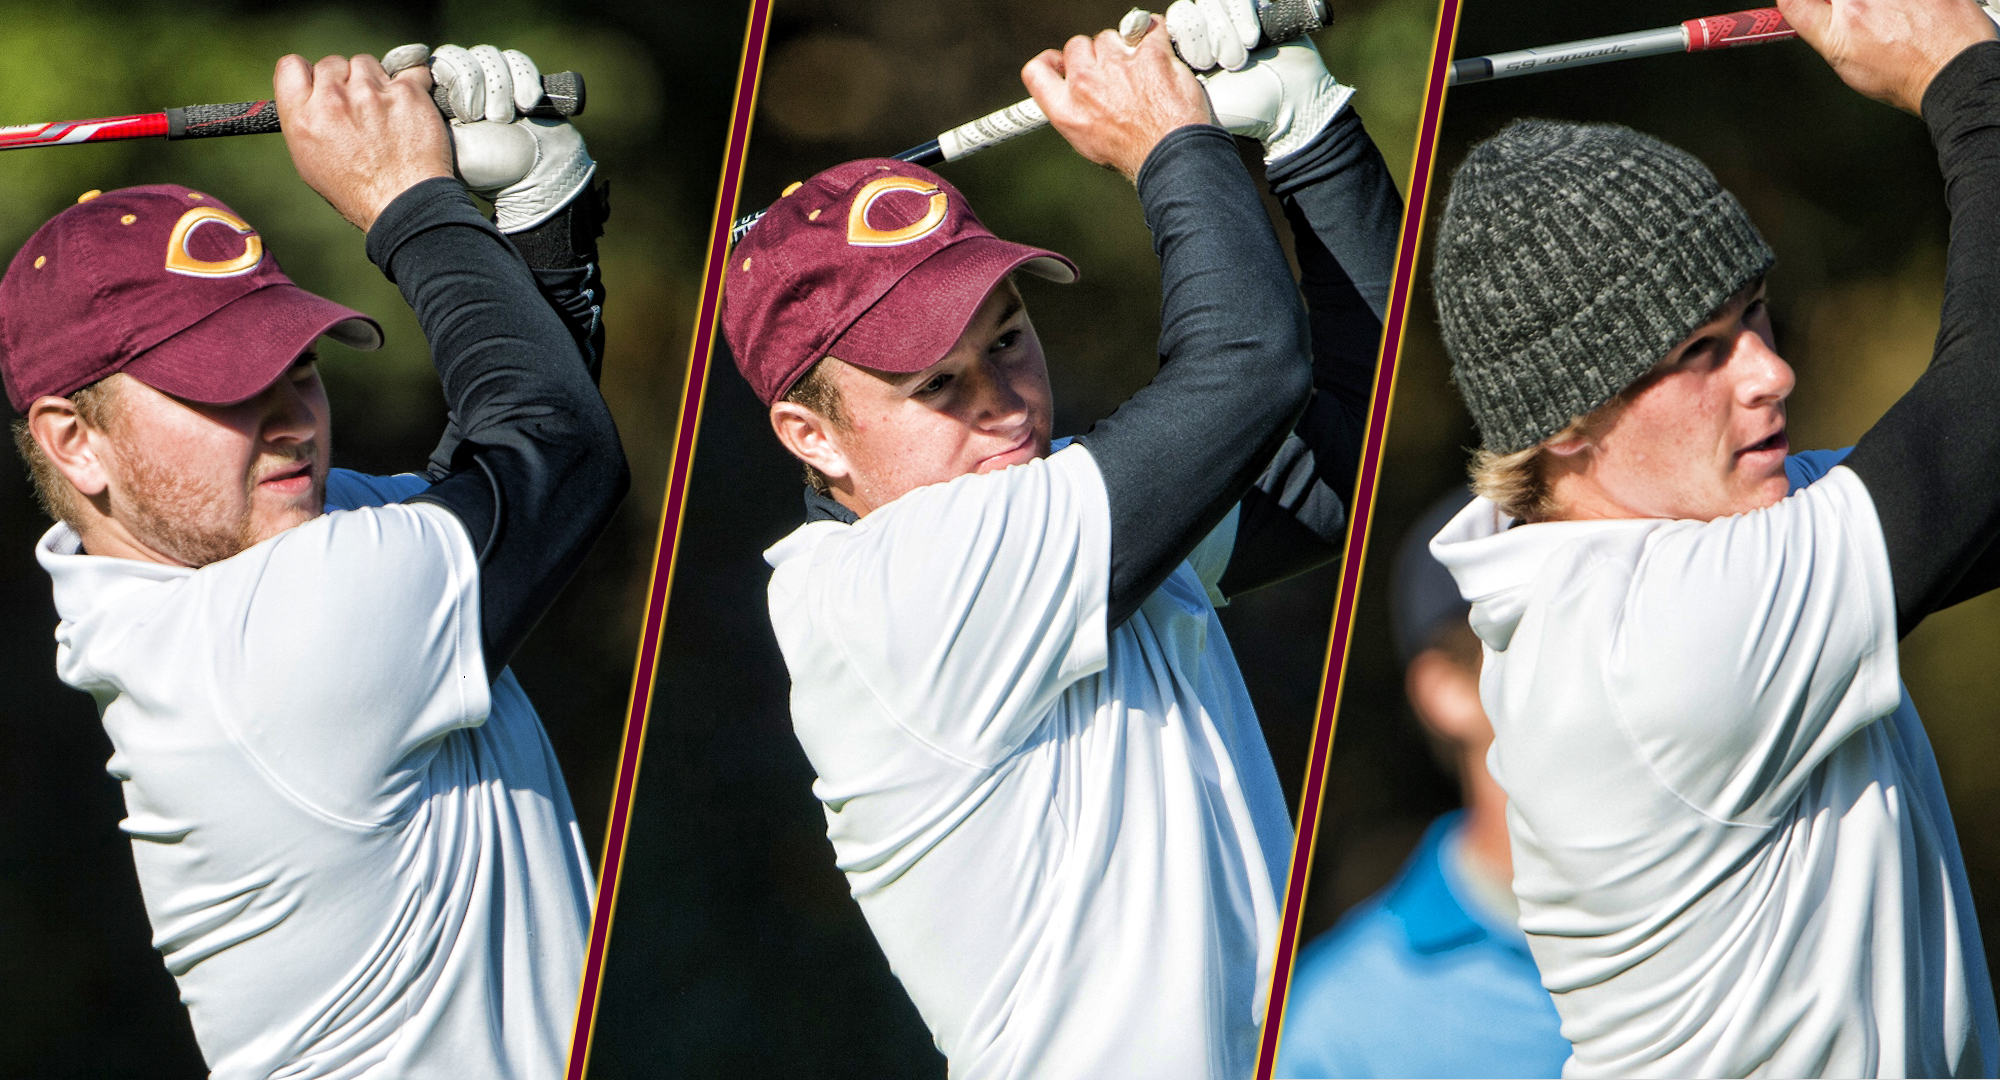 Nathaniel Kahlbaugh (L), Blake Kahlbaugh and Gage Stromme (R) all shot a 69 to lead the Cobbers to a single-round school record, and first place, at the Bobby Krig Invite.